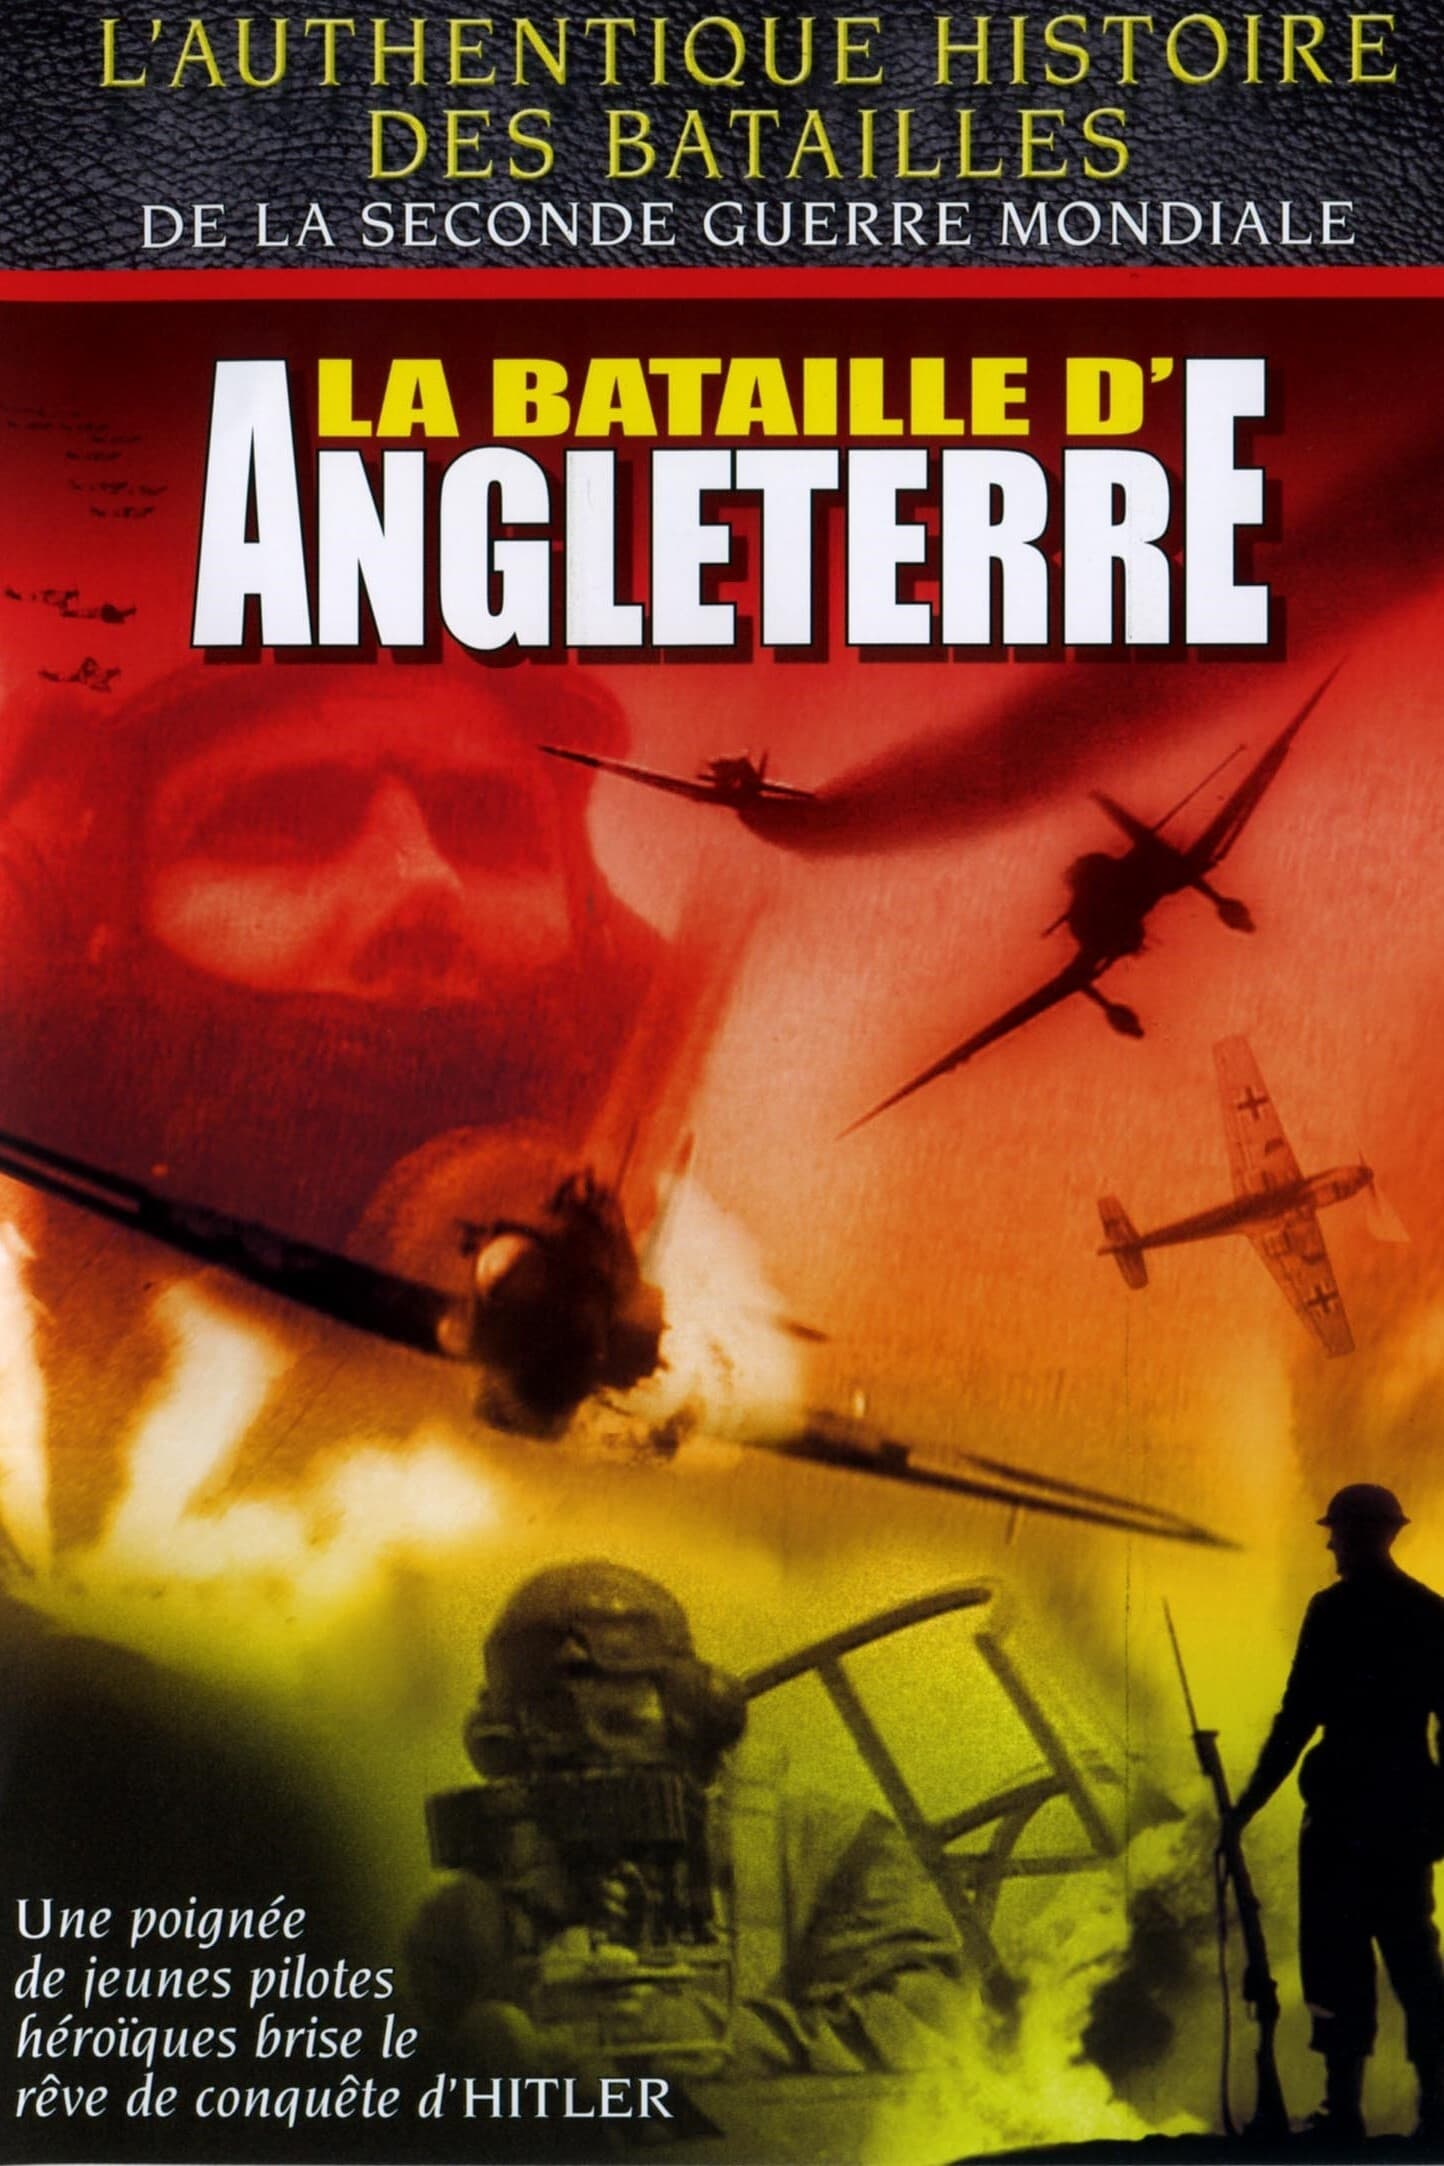 La Bataille D'angleterre Streaming : bataille, d'angleterre, streaming, Bataille, D'Angleterre, (2010), Film., Regarder, Streaming, Online, Synopsis